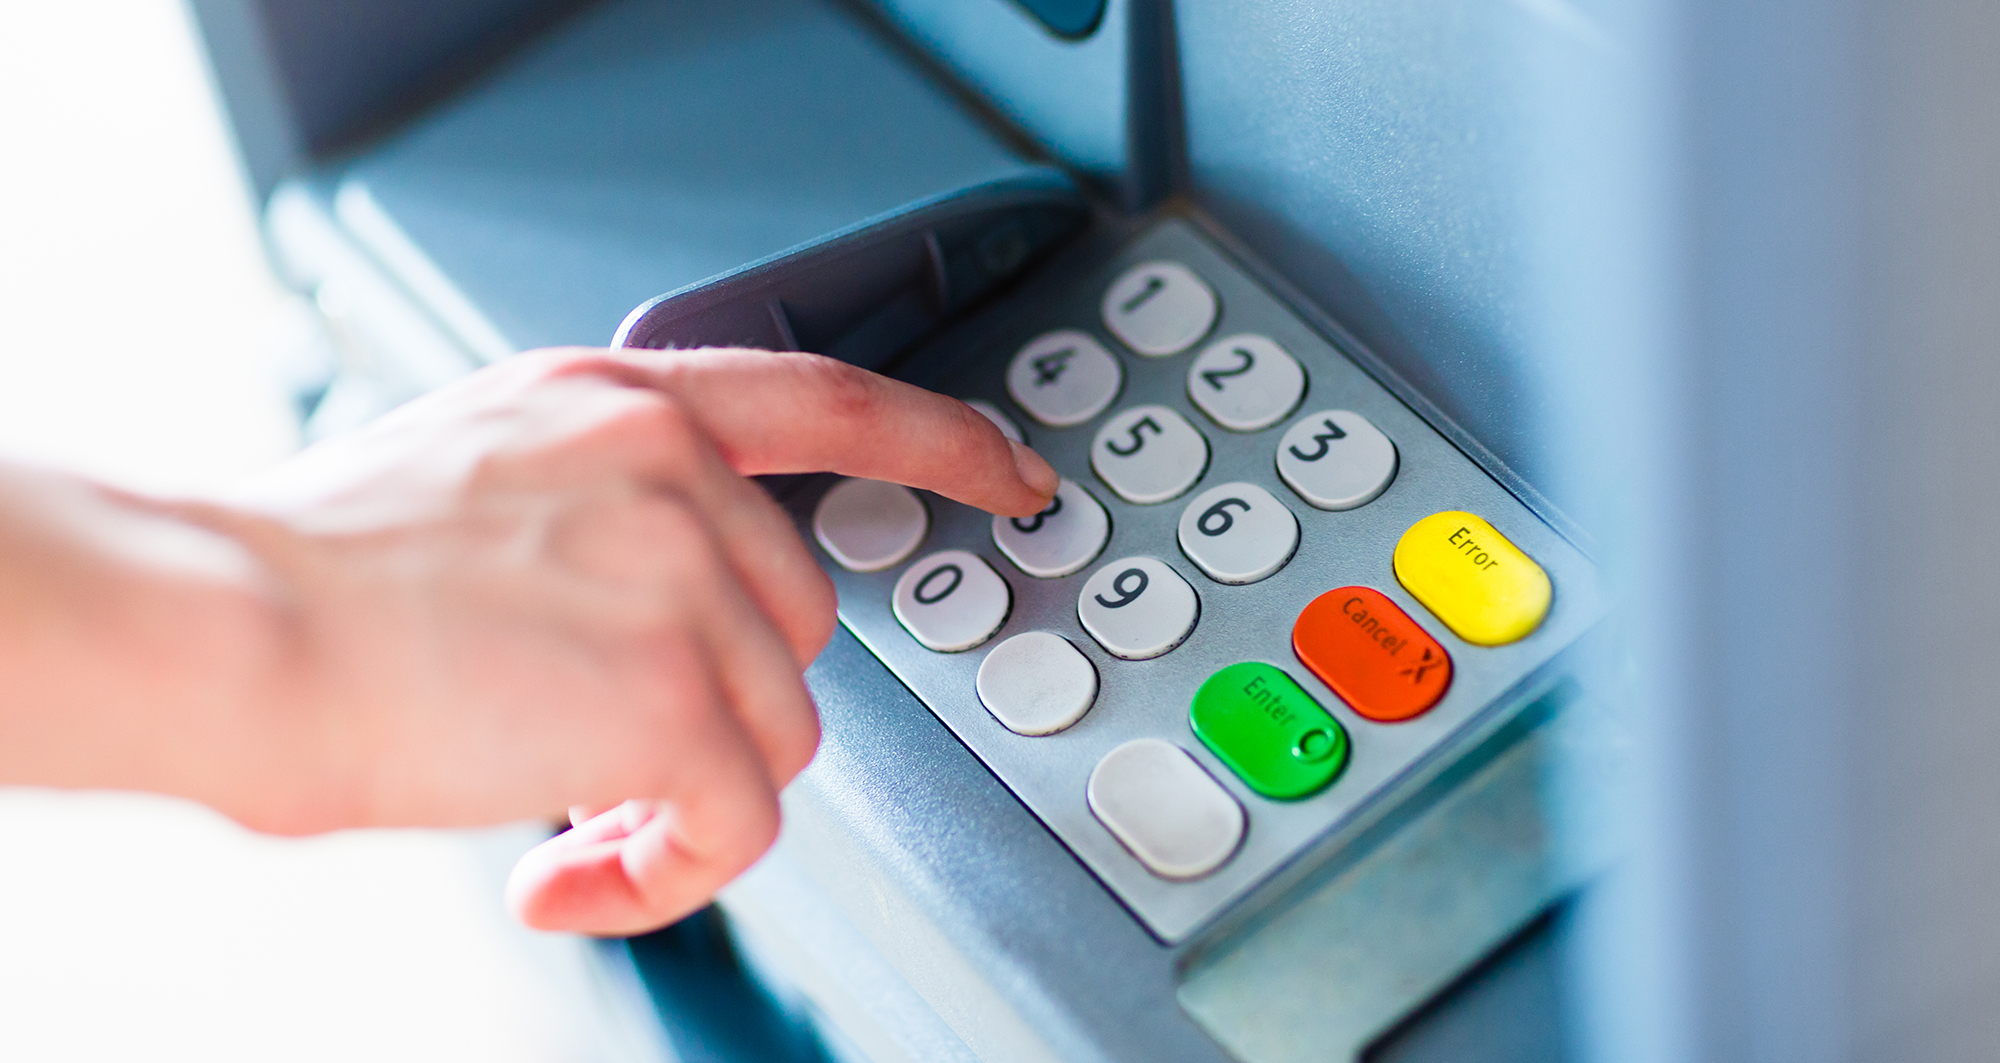 5 tips to safely use ATMs abroad